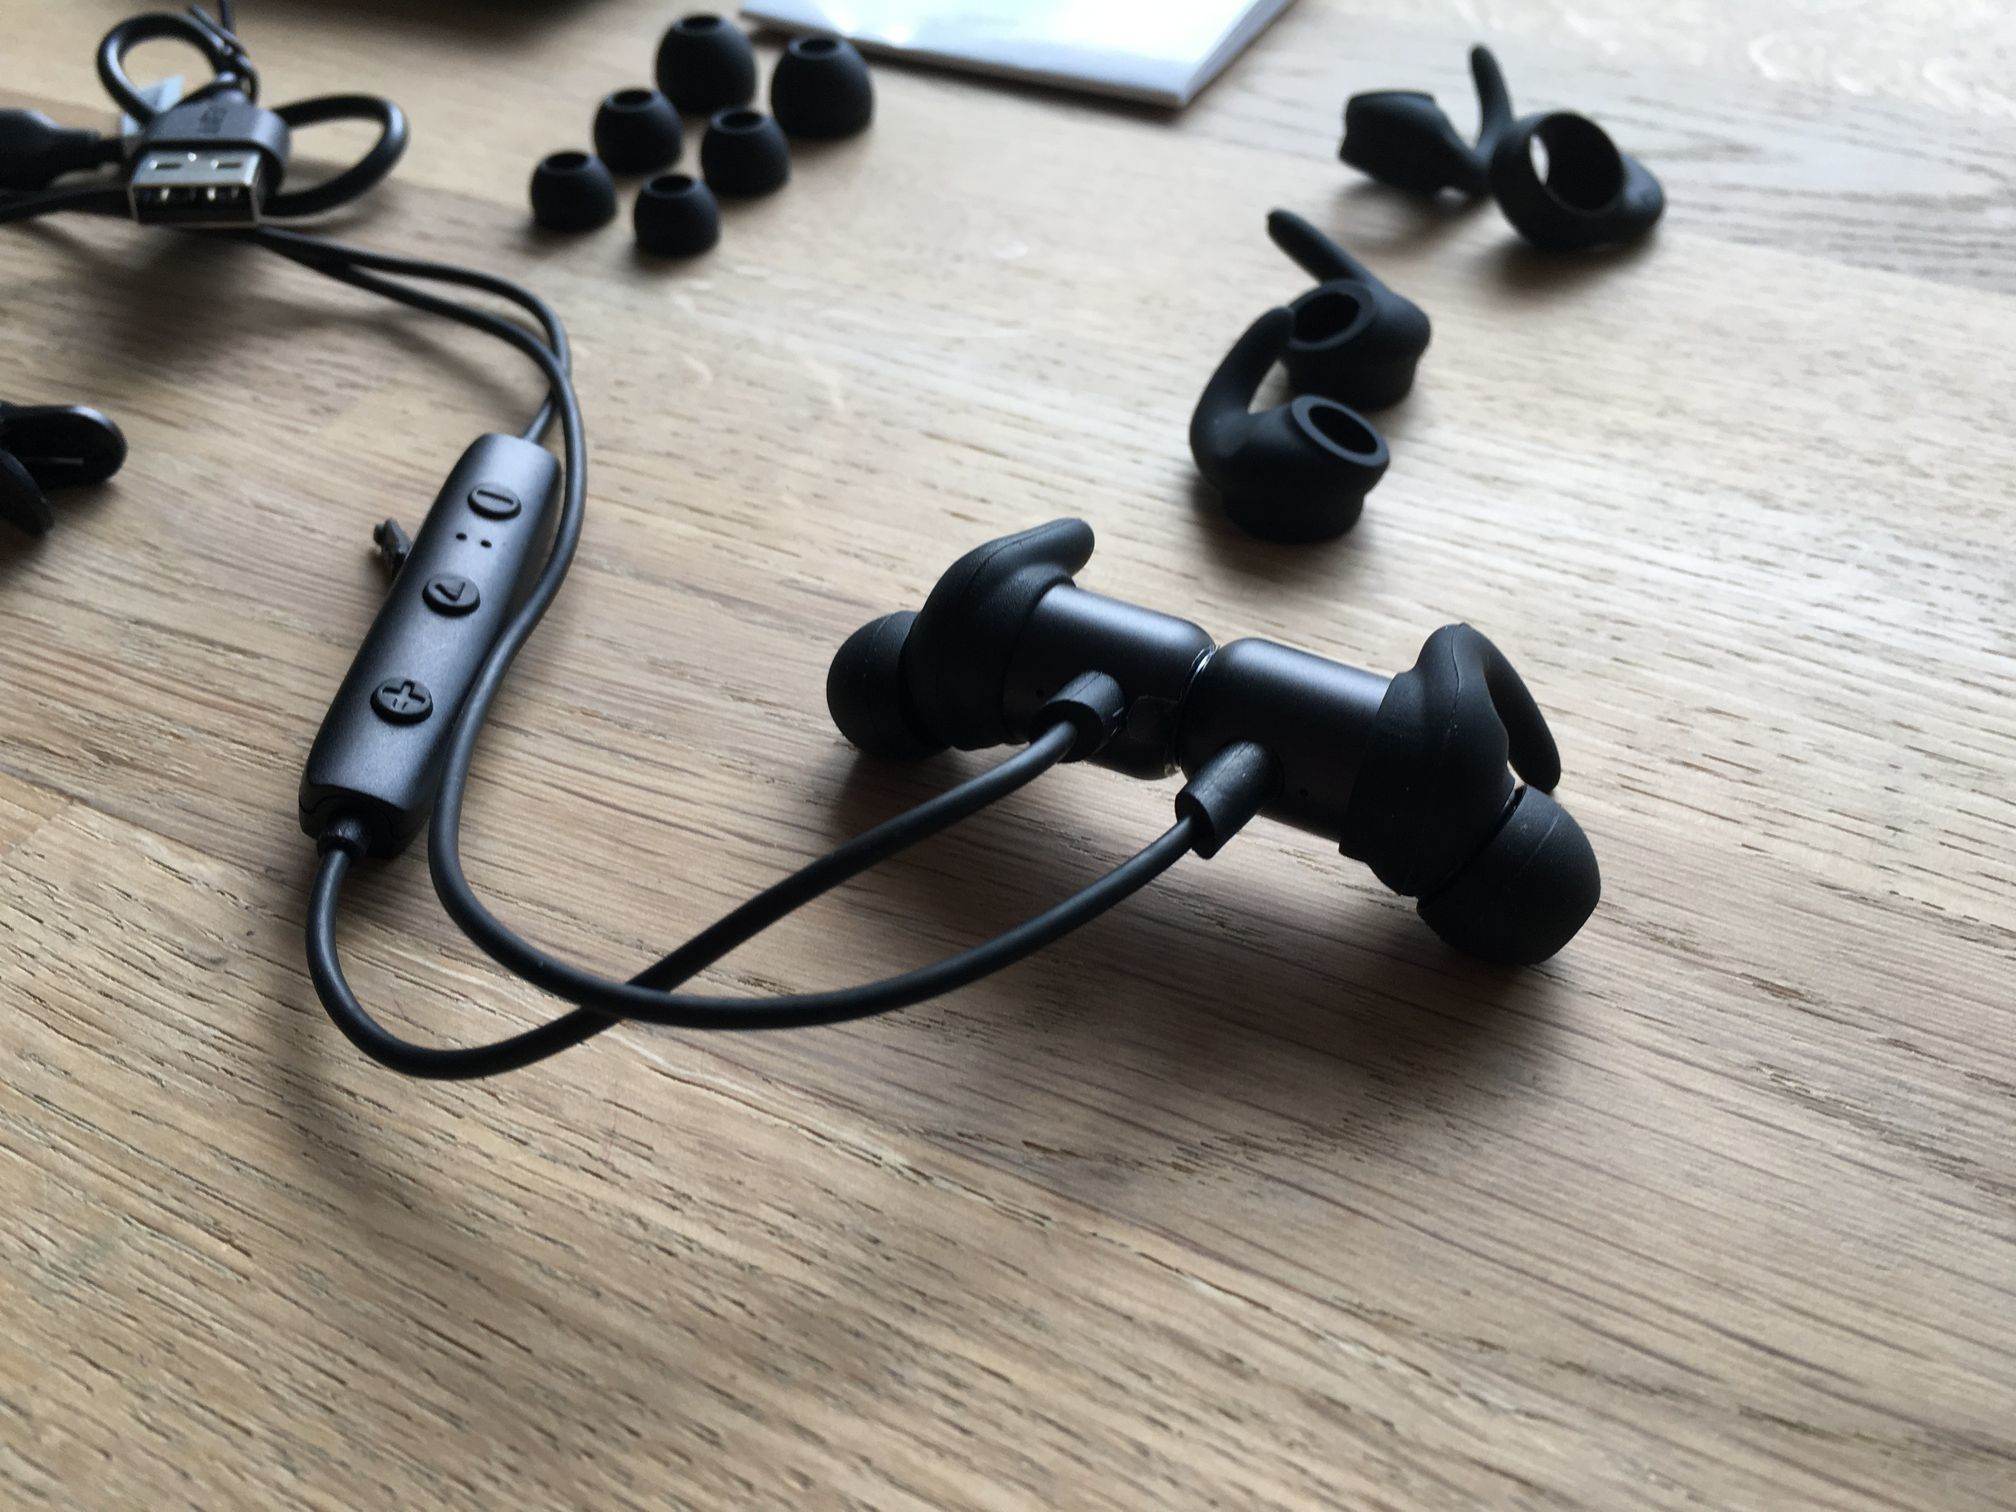 8237faa2e78 Review: Anker SoundBuds Slim - Product Discussion - Community